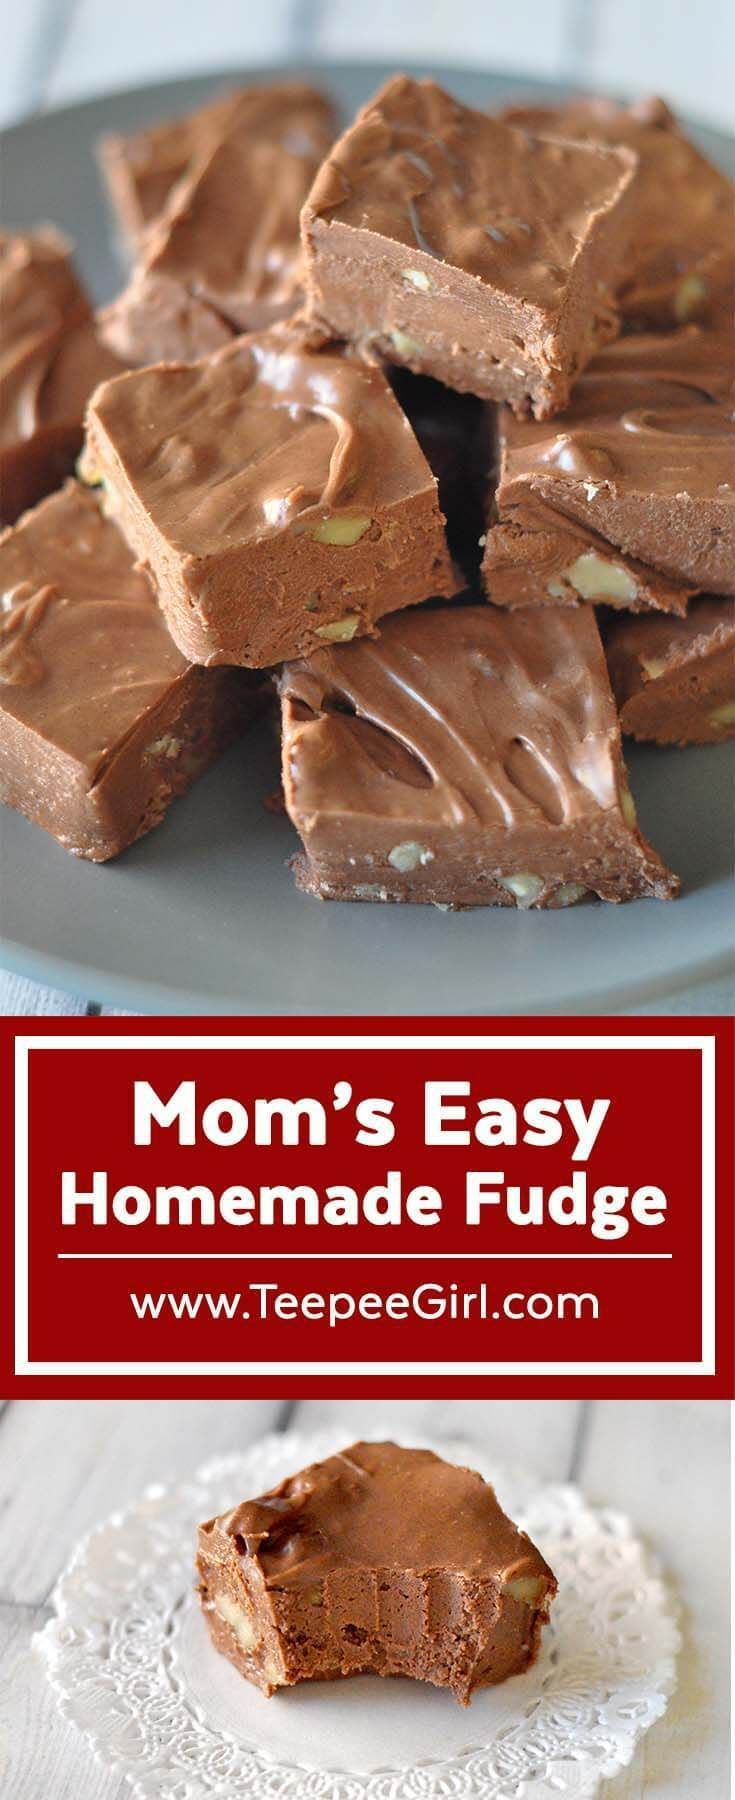 My mom has been making this fudge for as long as I can remember. It's creamy, decadent, and best of all, easy! Get the recipe at www.TeepeeGirl.com. #fudge #easyfudgerecipe #christmasfood (semi homemade desserts)